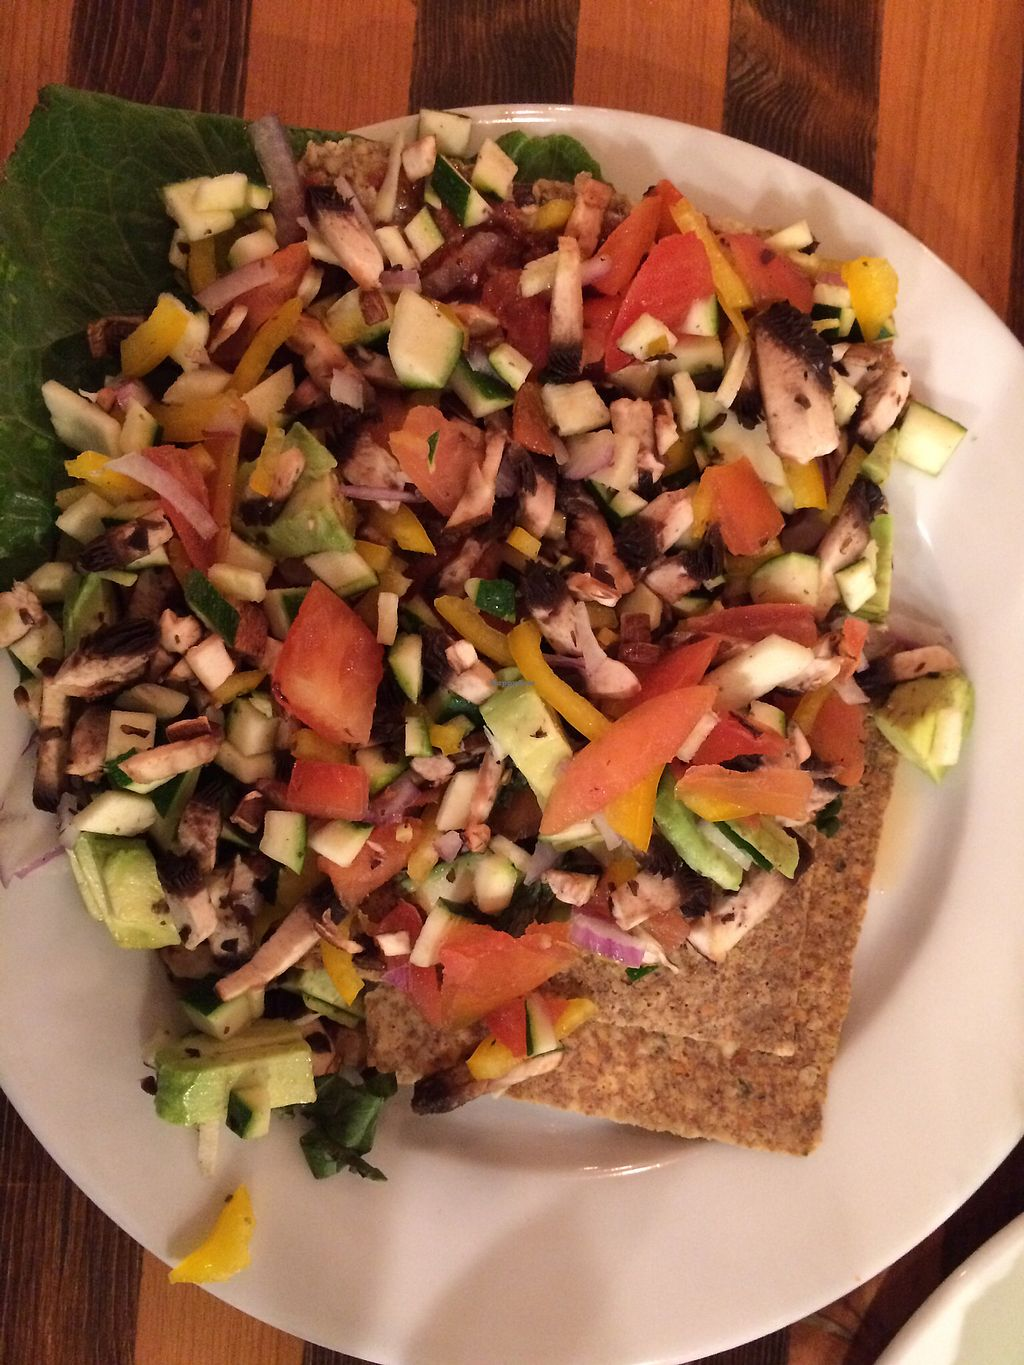 """Photo of Ginger's Garden Cafe  by <a href=""""/members/profile/stefaneRAW"""">stefaneRAW</a> <br/>Raw pizza <br/> September 9, 2017  - <a href='/contact/abuse/image/16225/302734'>Report</a>"""